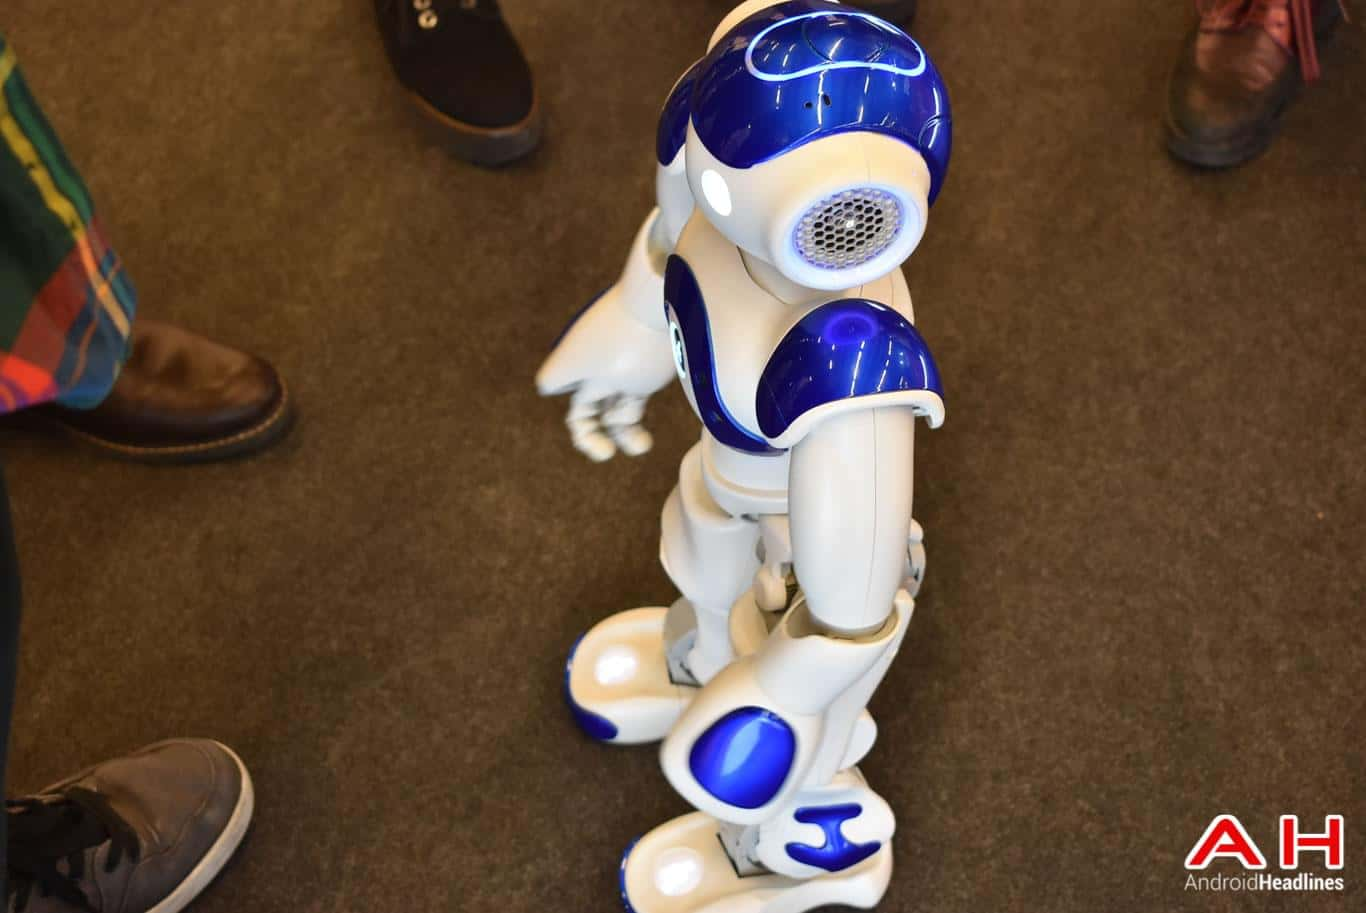 SoftBank Pepper Robot AH 7